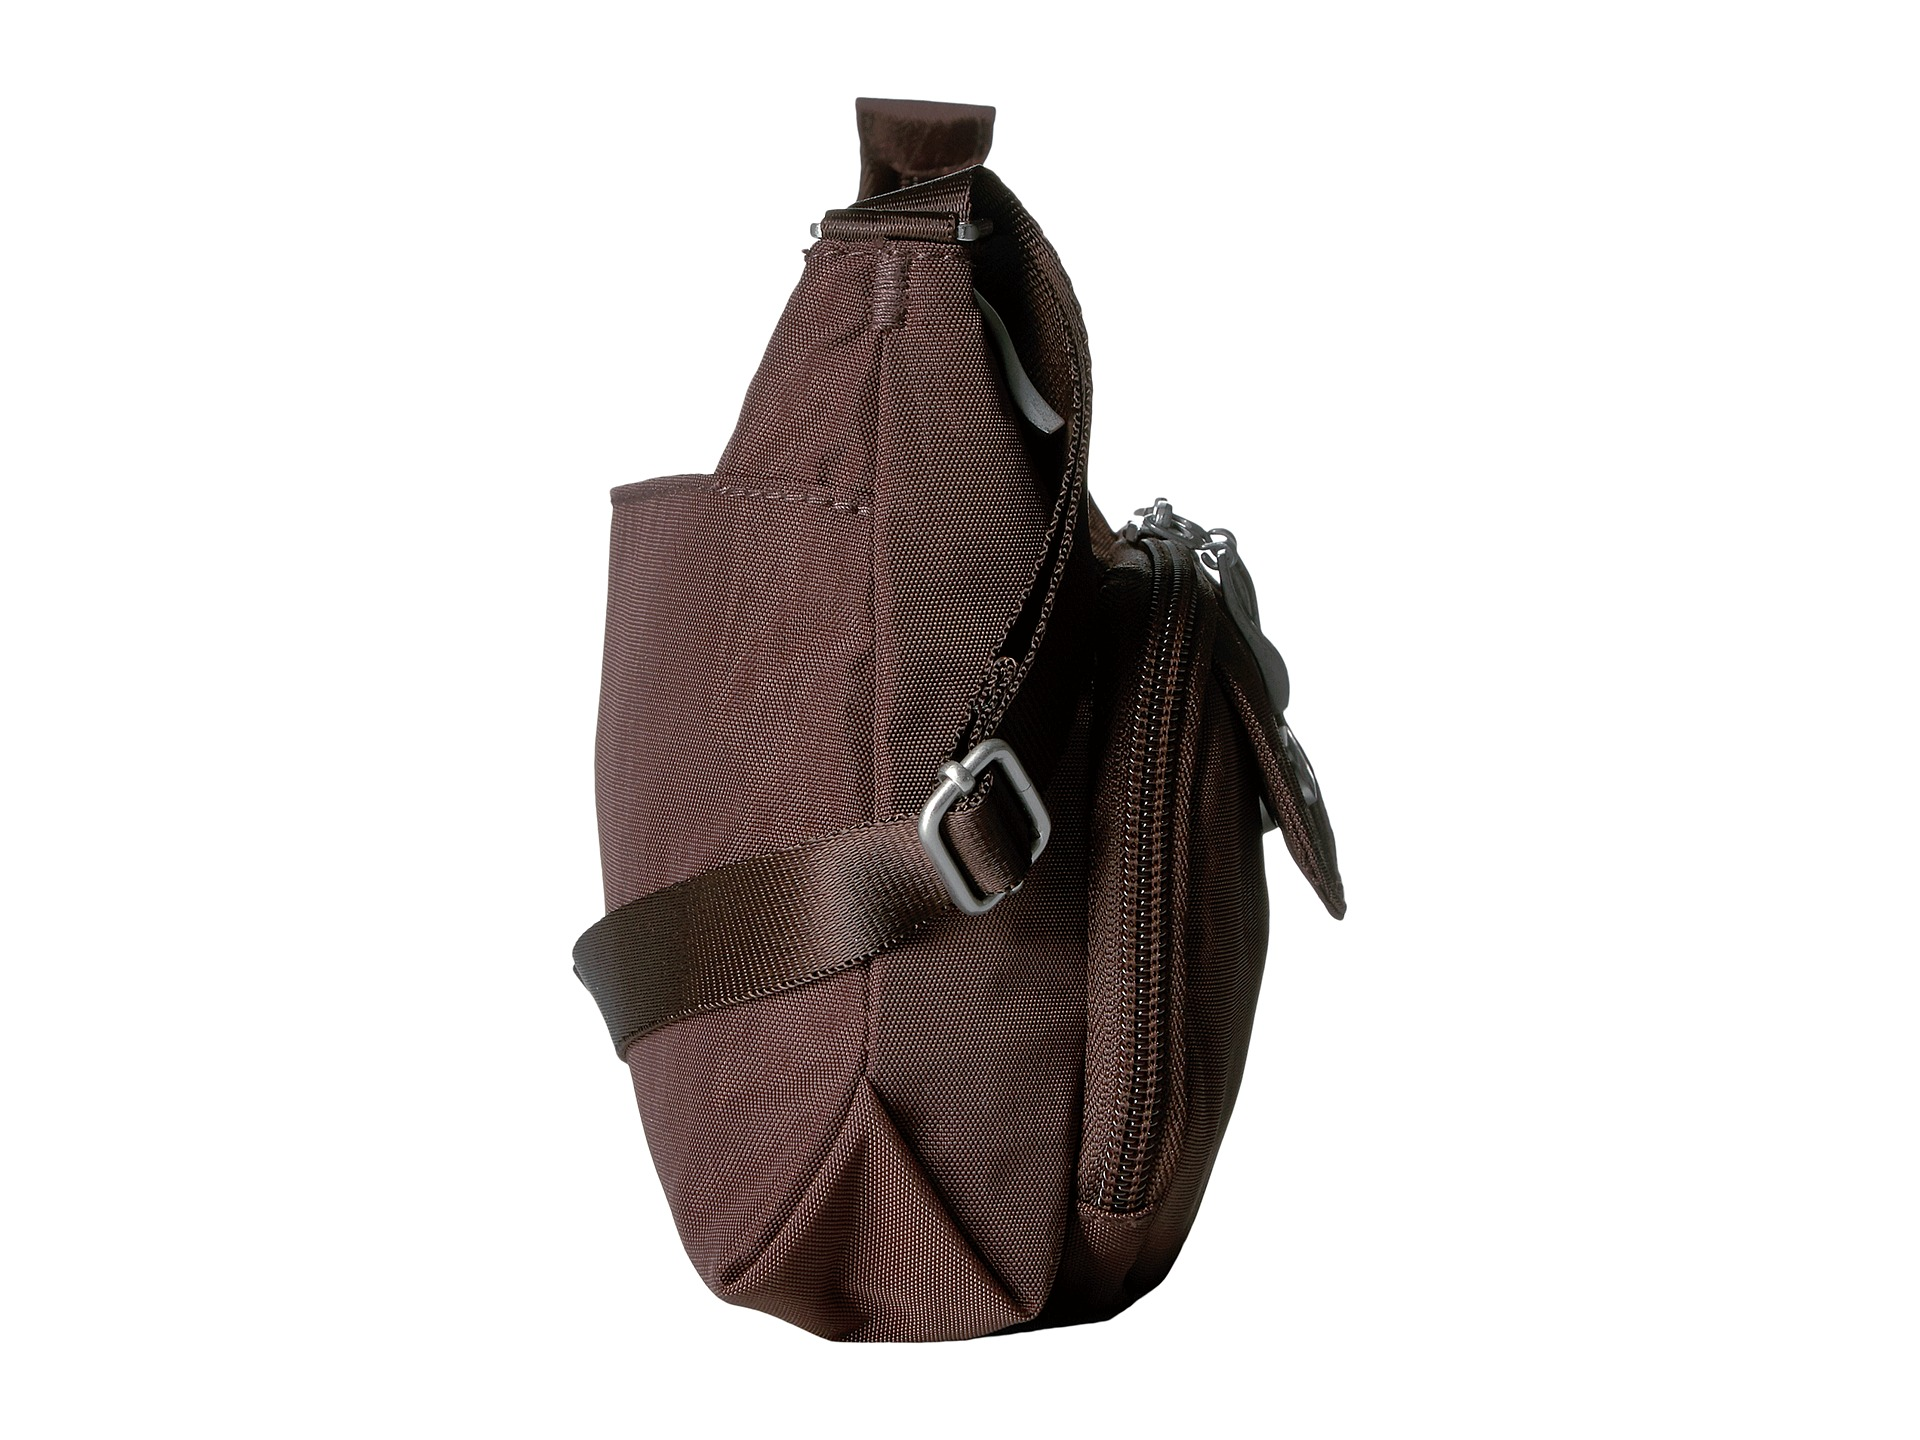 baggallini Bags & Accessories- FREE SHIPPING - eBags.com